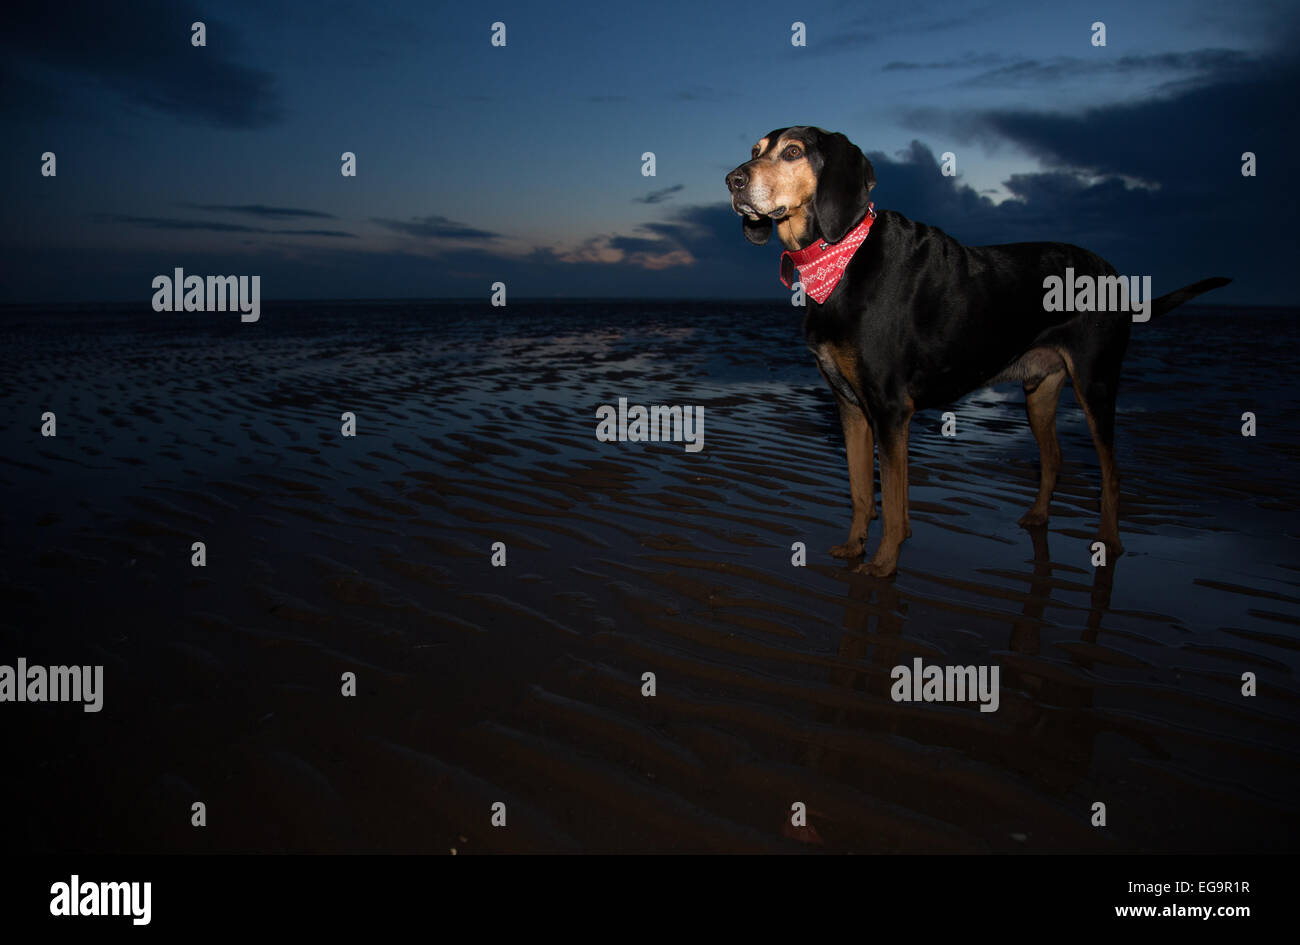 Black and Tan Coonhound dog on beach in Blackpool, Uk. - Stock Image